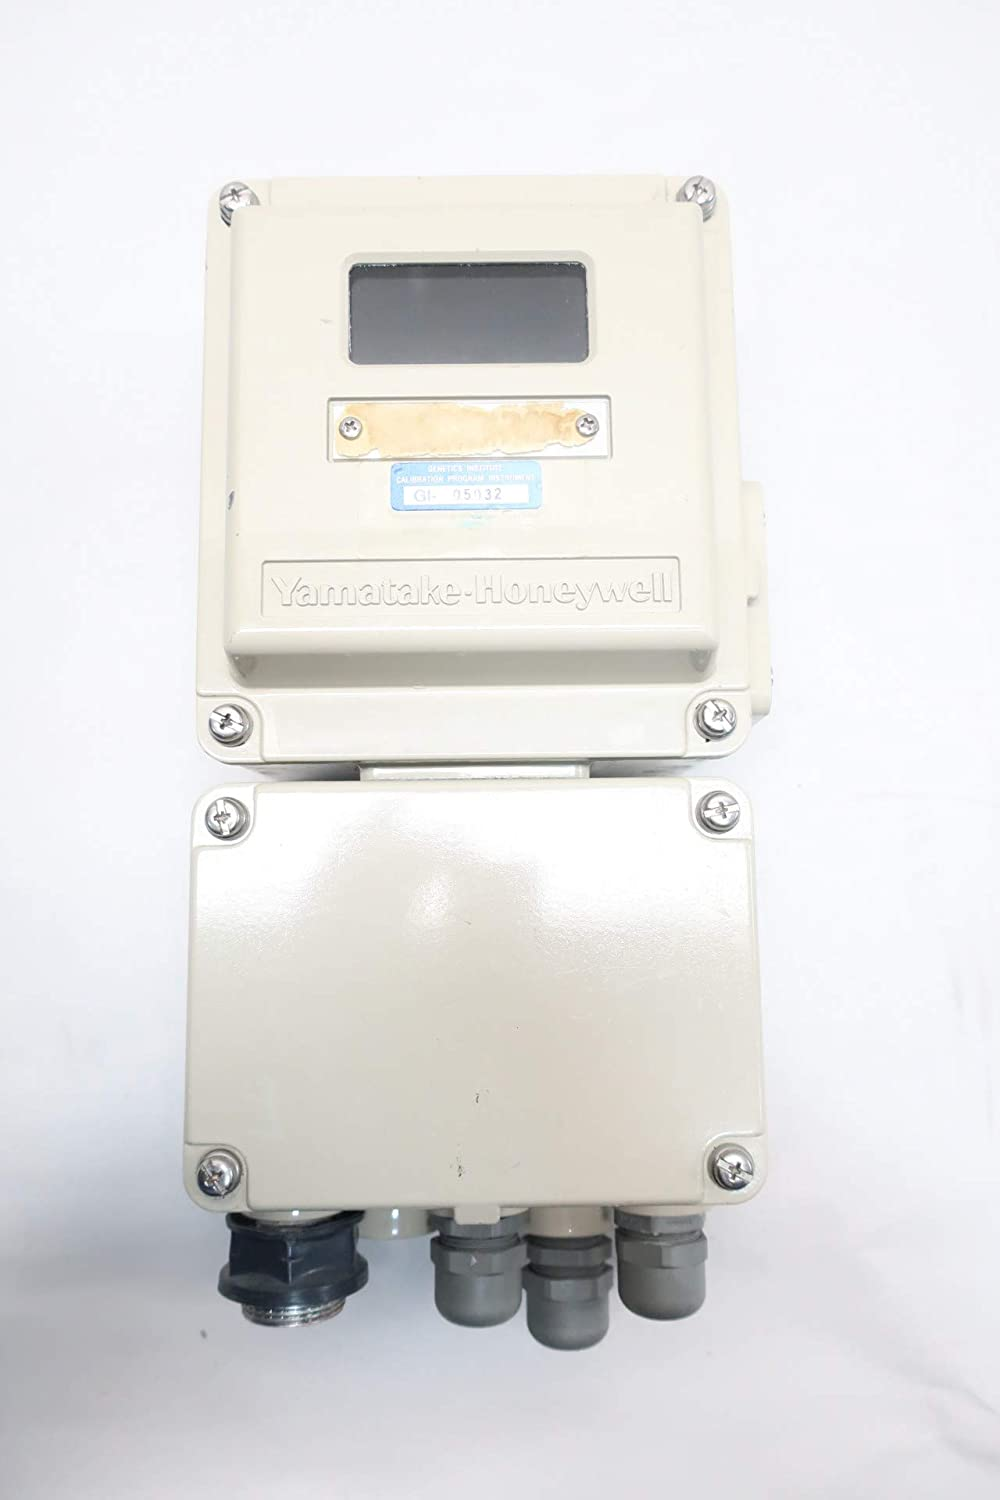 YAMATAKE Honeywell KIX18B-E11X2SY-XXX0XXX Converter/Detector: Amazon.com: Industrial & Scientific